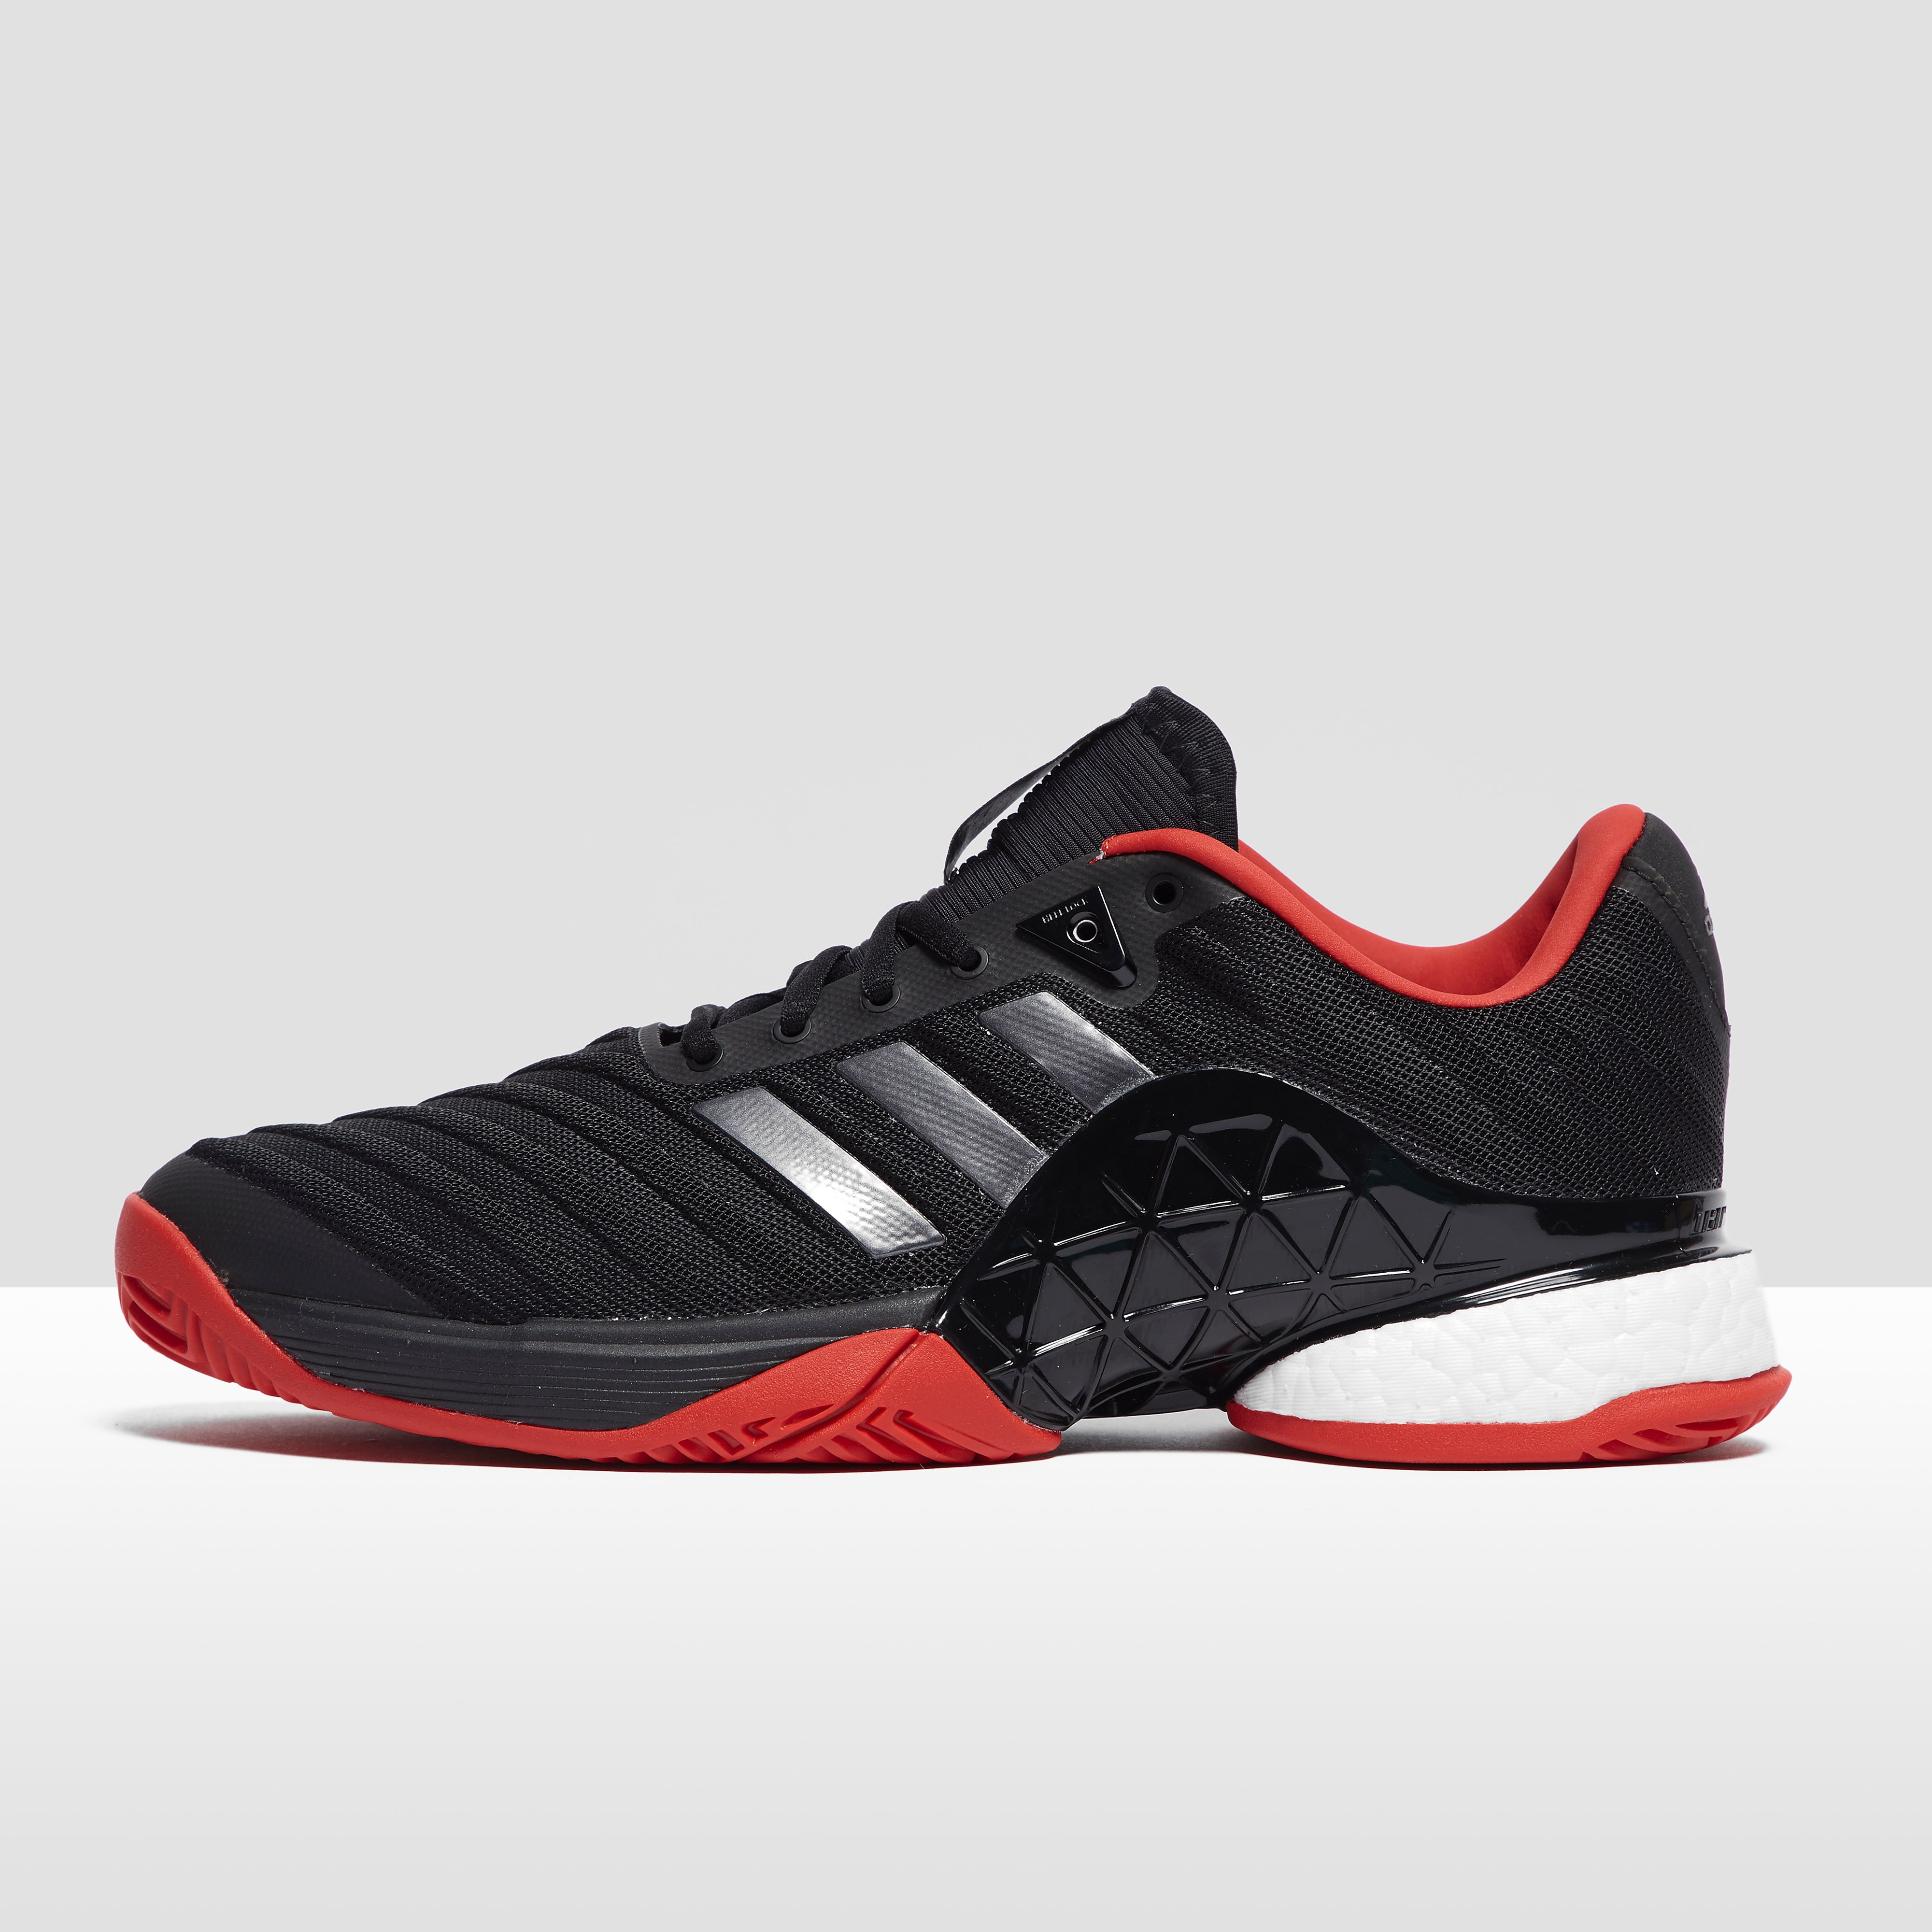 adidas Barricade 2018 Boost Men's Tennis Shoes